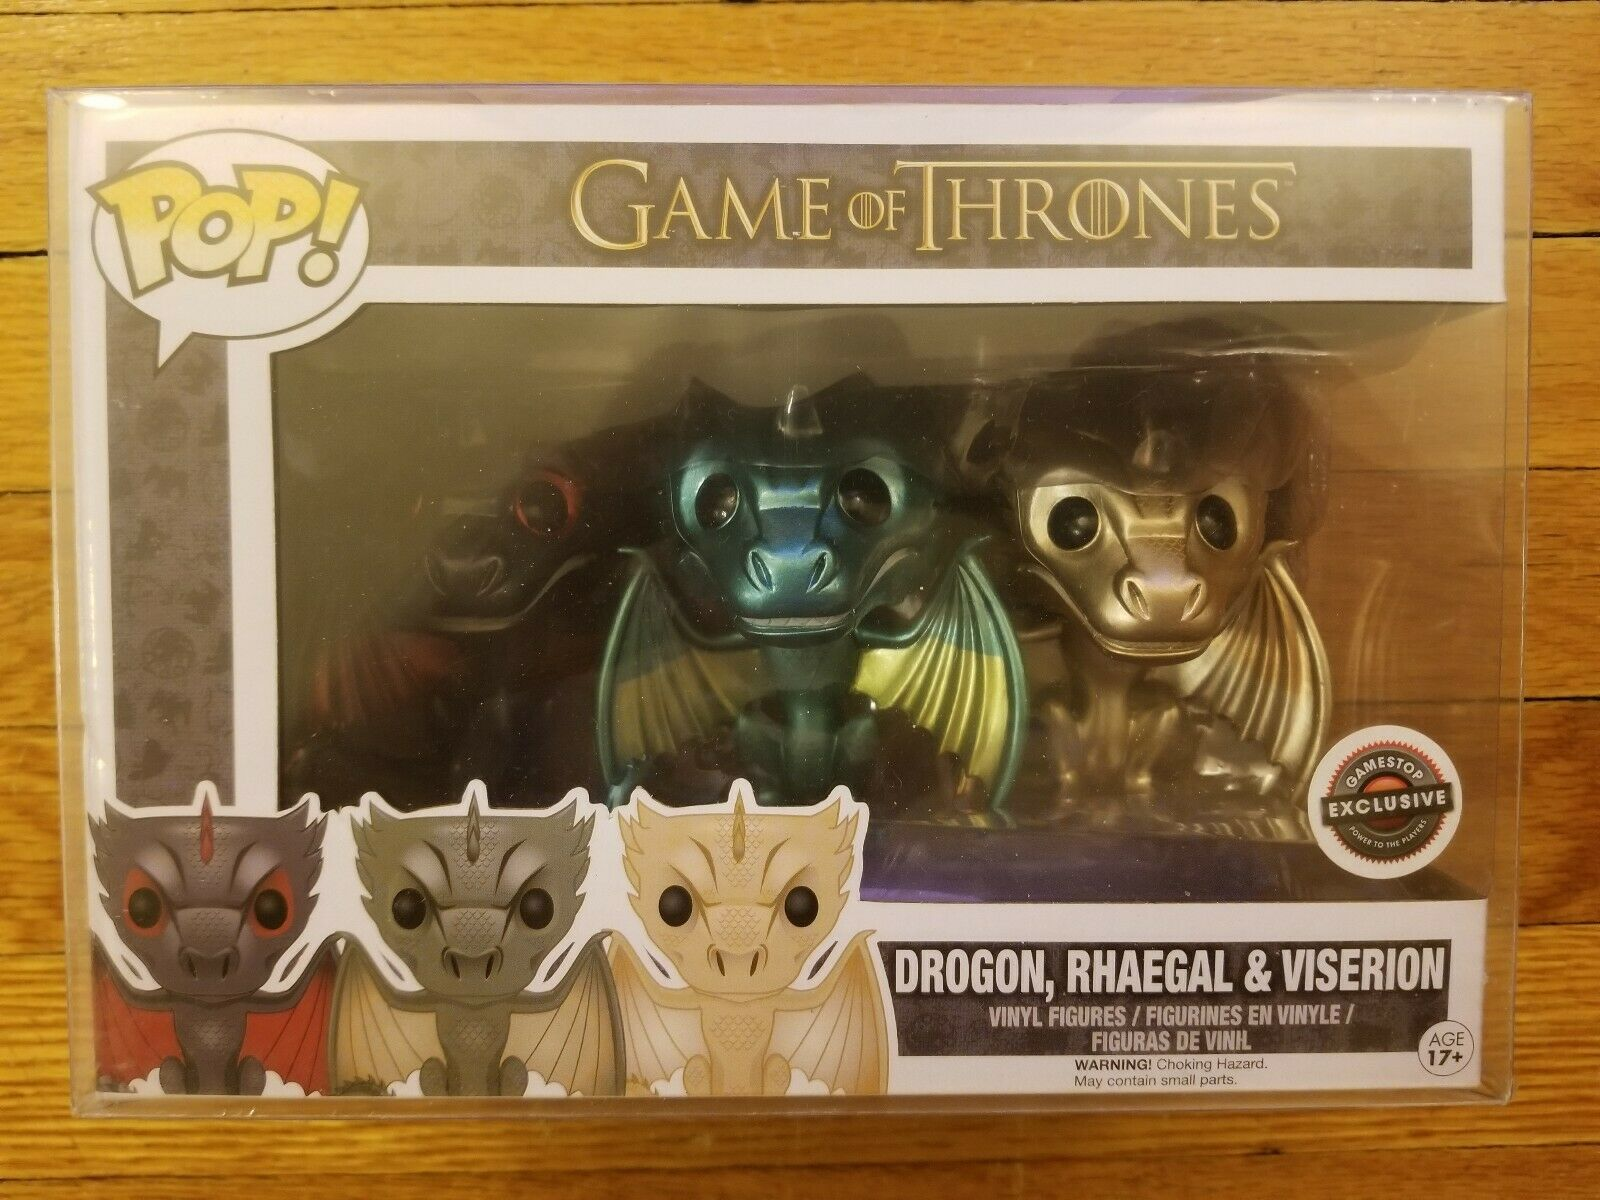 Game Of Thrones GoT Metallic Dragon Gamestop Exclusive Rhaegal Viserion Drogon